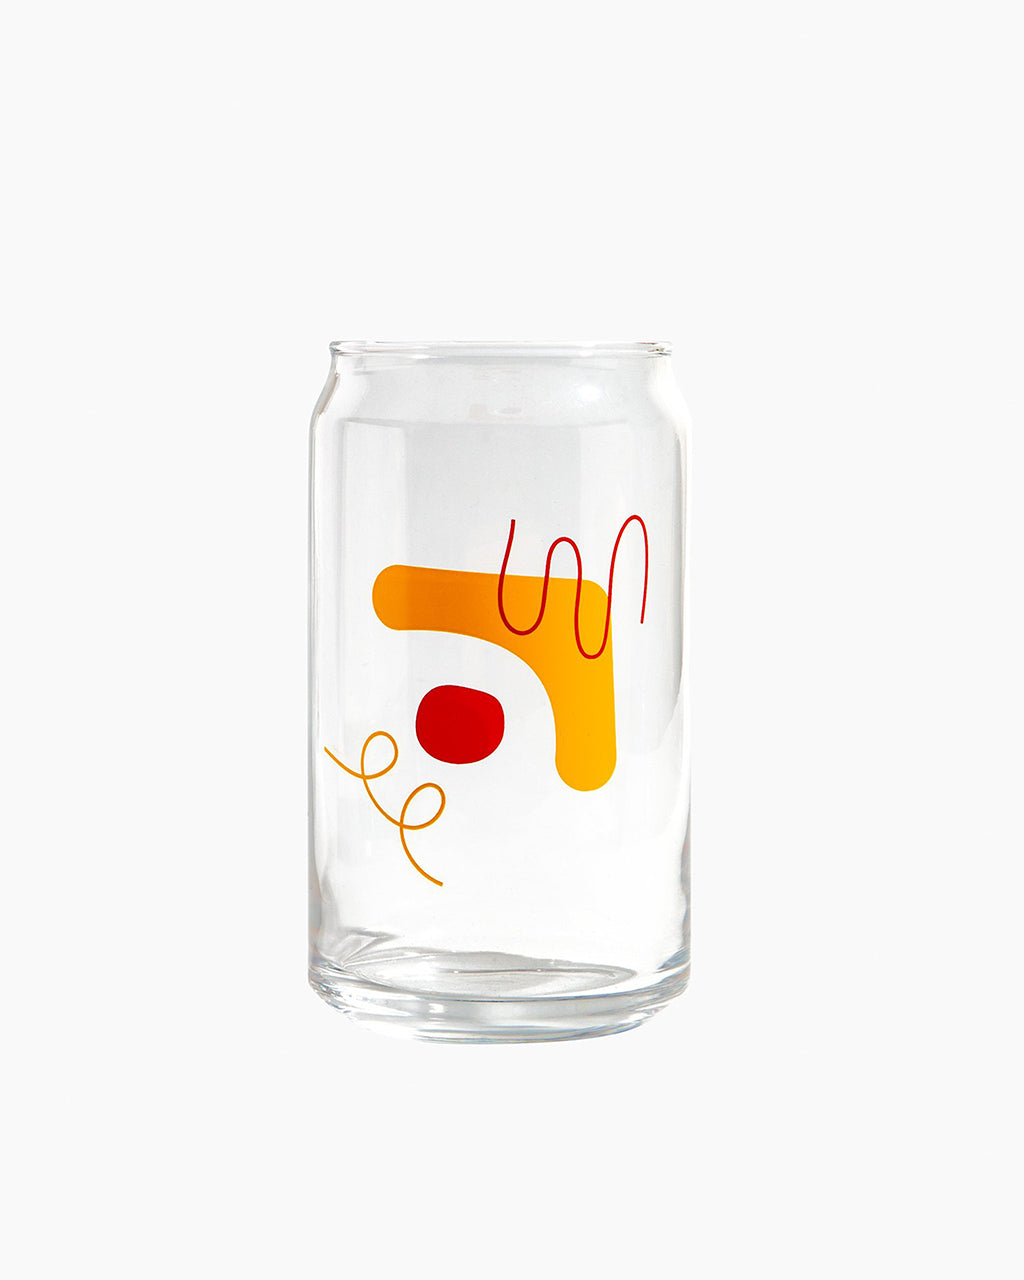 glass with yellow and red design